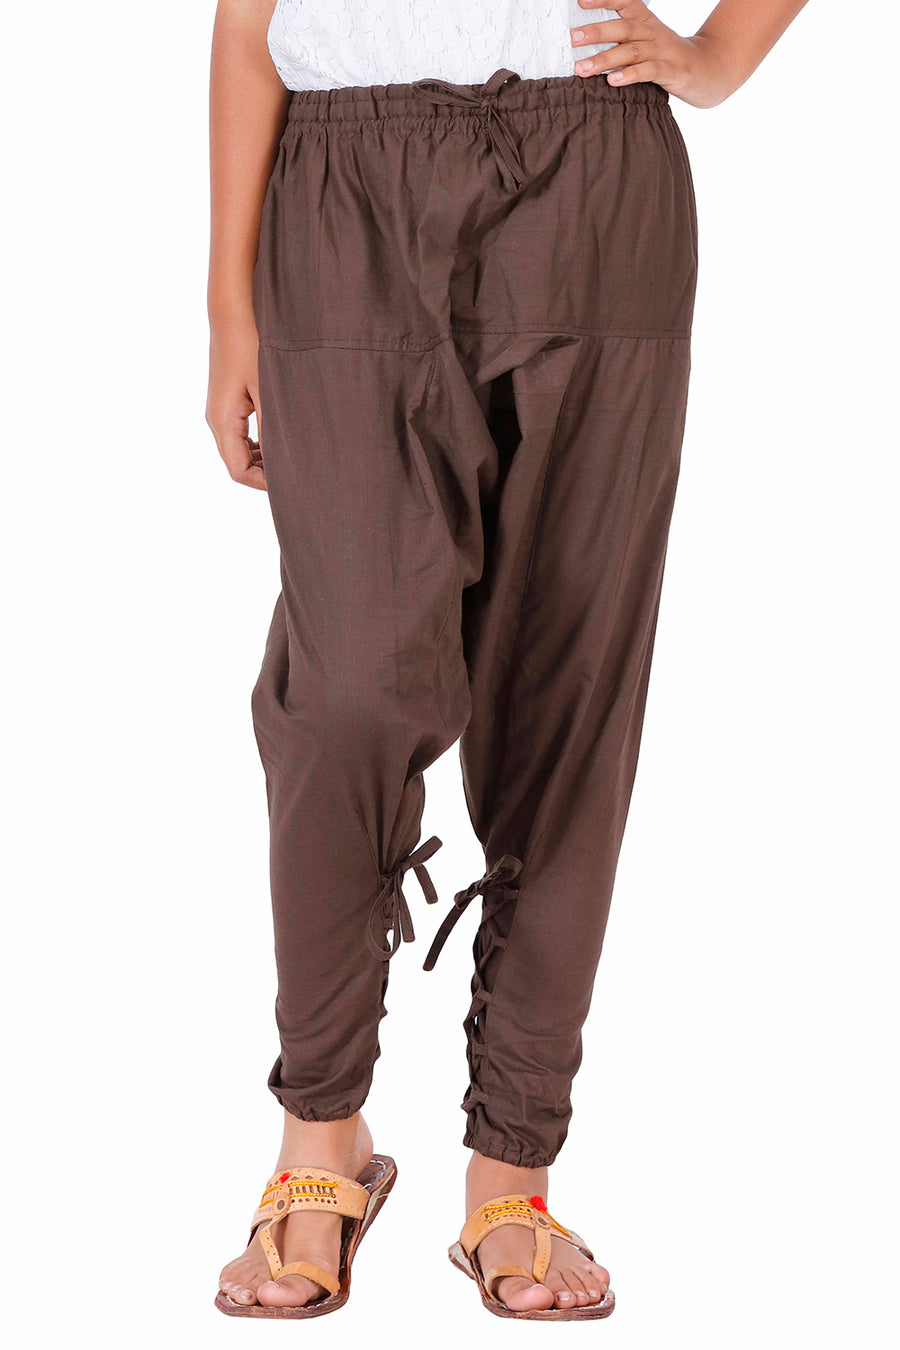 Kids Harem Pants, Kids Parachute Pants, Brown Harem Pants for kids, mc hammer pants for kids, slouch pants kids, cotton harem pants kids, kids harem sweatpants,kids drop crotch pants, boys harem pants, girls harem pants, harem pants for kids boys,boys pants, girls harem pants, parachute pants girls, parachute pants boys